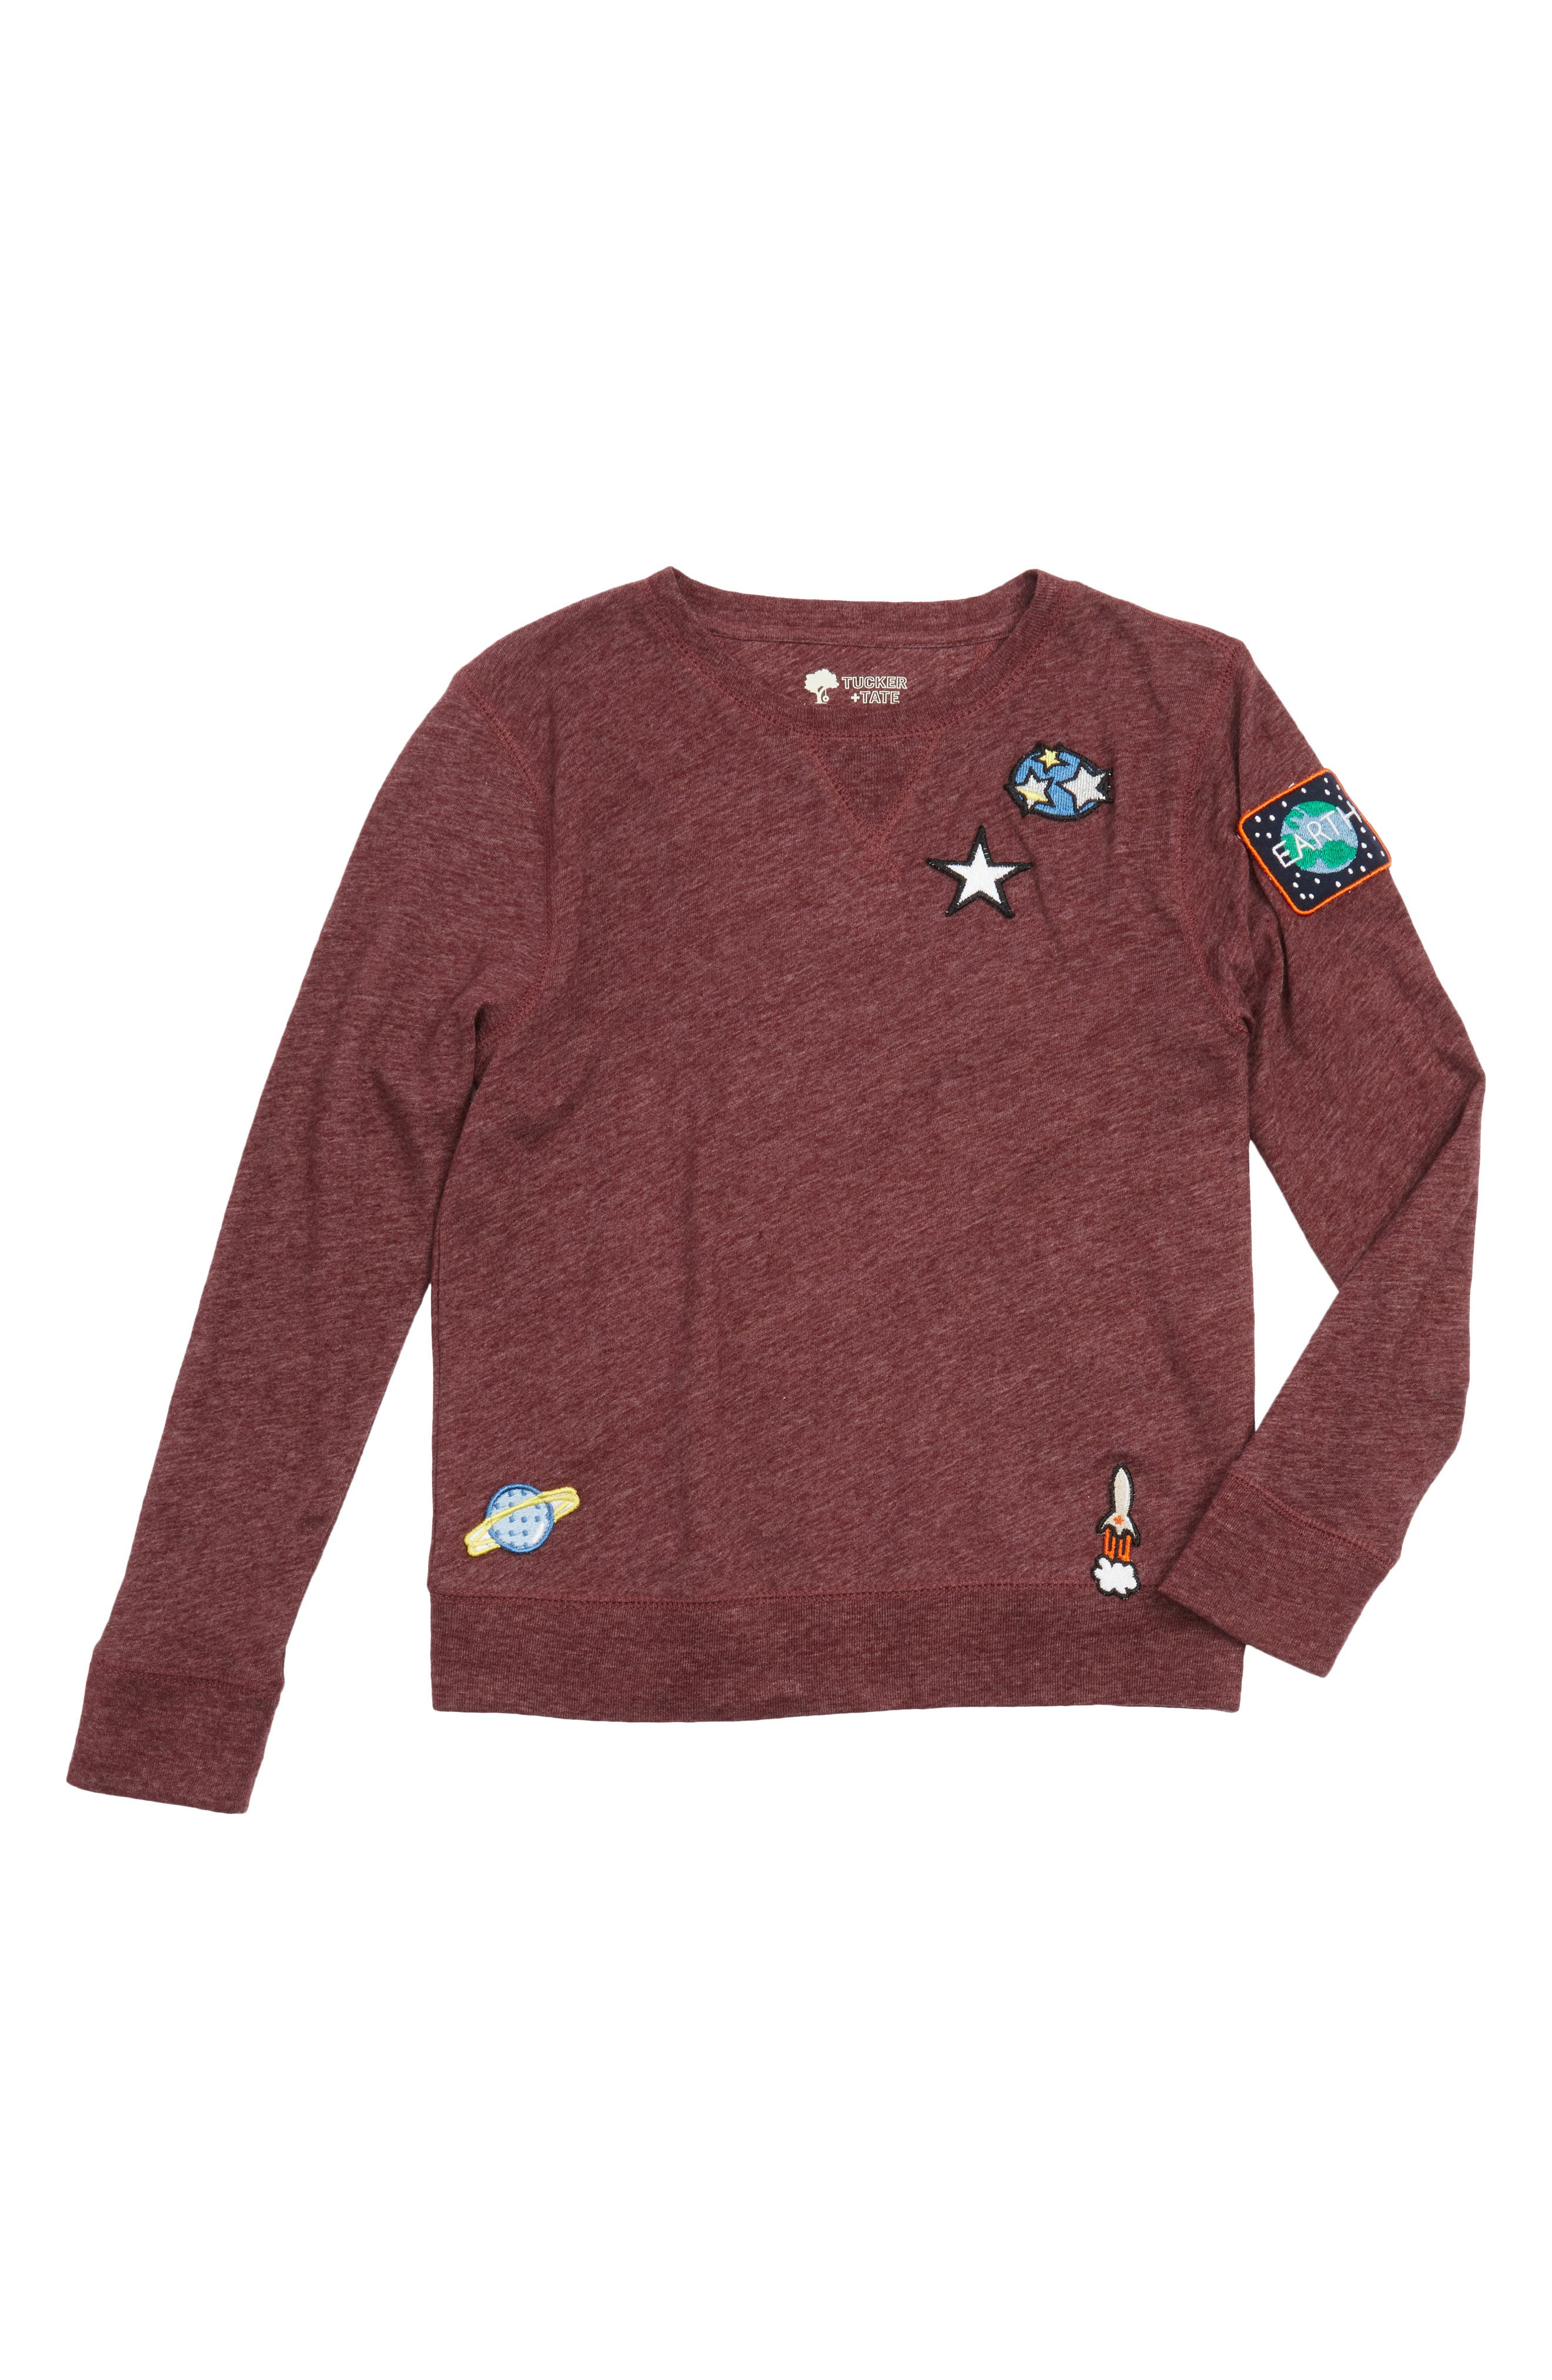 Alternate Image 1 Selected - Tucker + Tate Outer Space Appliquéd Long Sleeve T-Shirt (Toddler Boys & Little Boys)